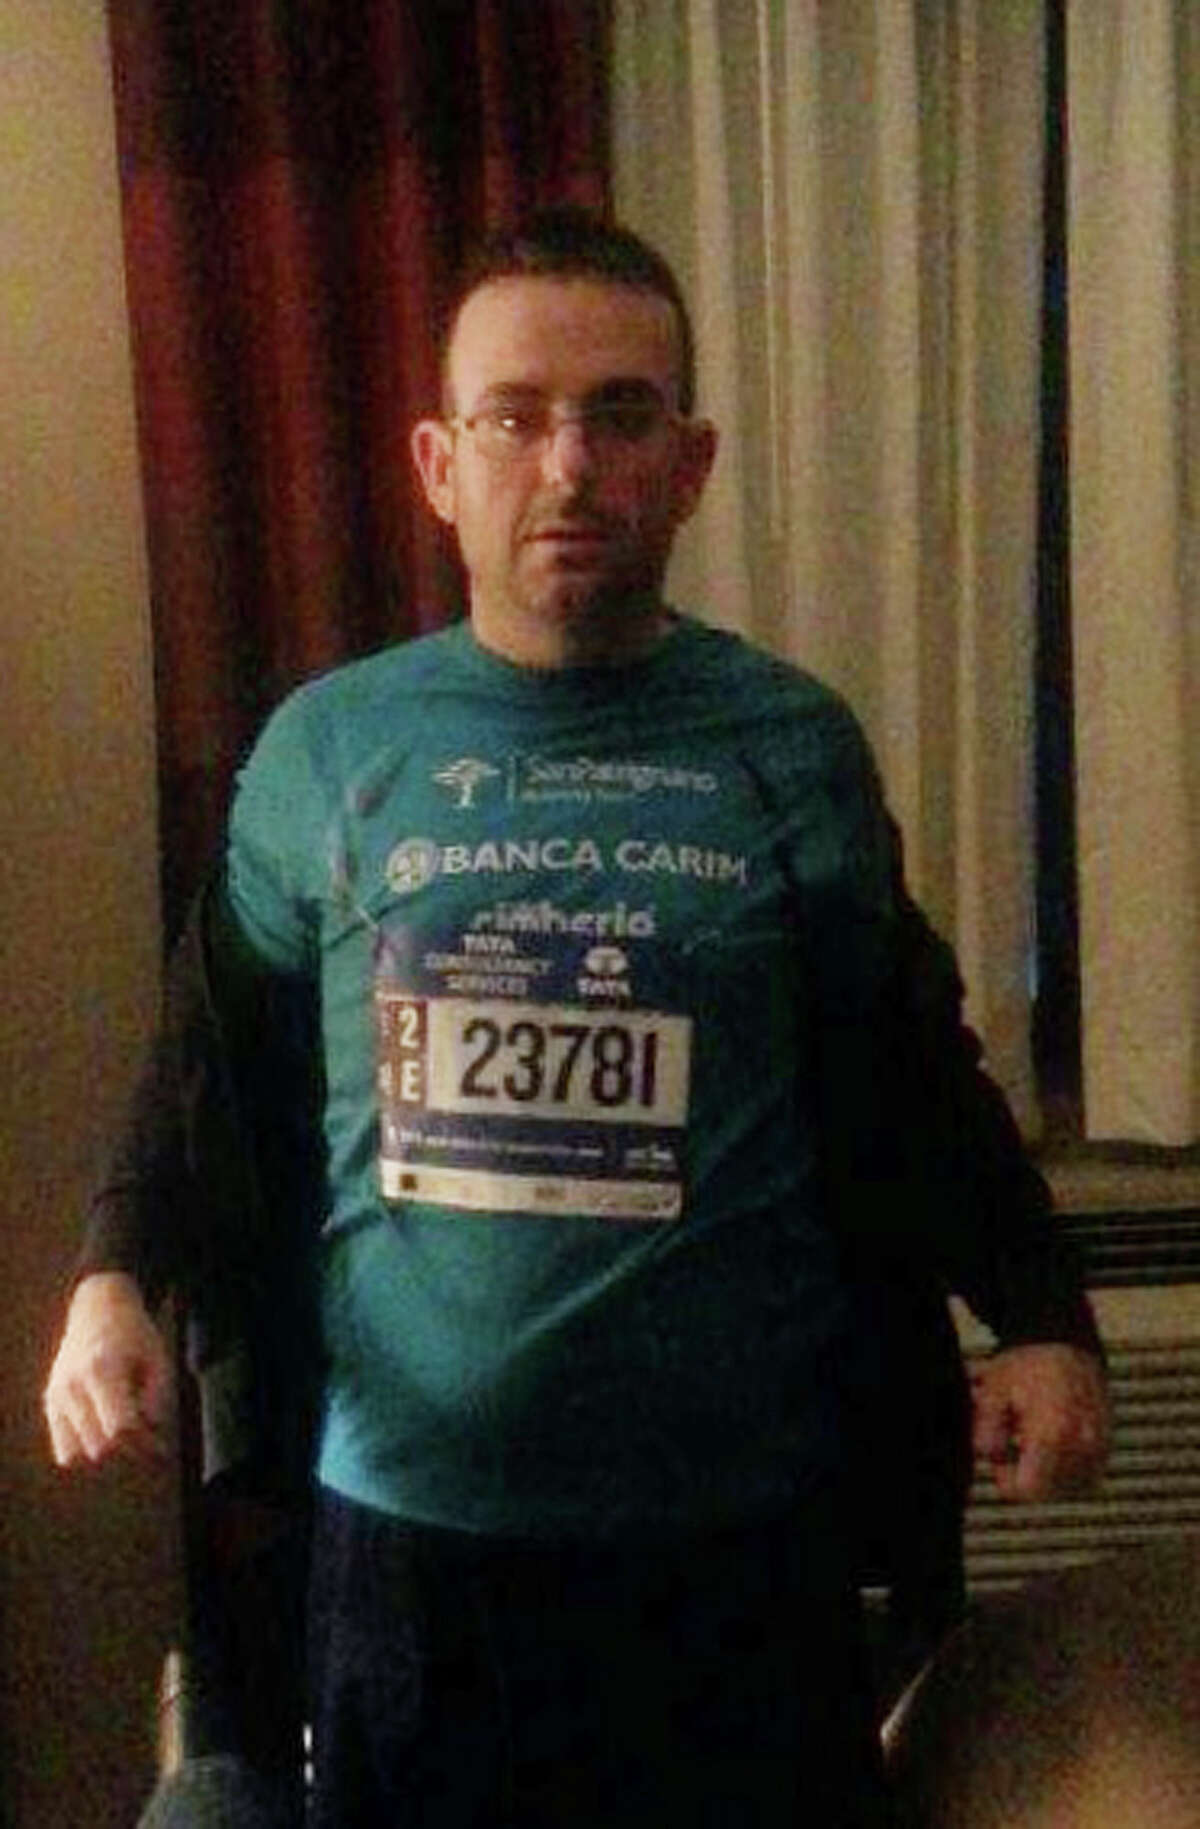 This undated photo provided by the New York Police Department shows Gianclaudio Marengo. The NYPD is asking for the public's help in locating Marengo, an Italian man who speaks only Italian and is mentally challenged, who ran in the New York City Marathon. Police said Marengo was last seen at the finish line in Central Park at around 3 p.m. on Nov. 1, 2015.